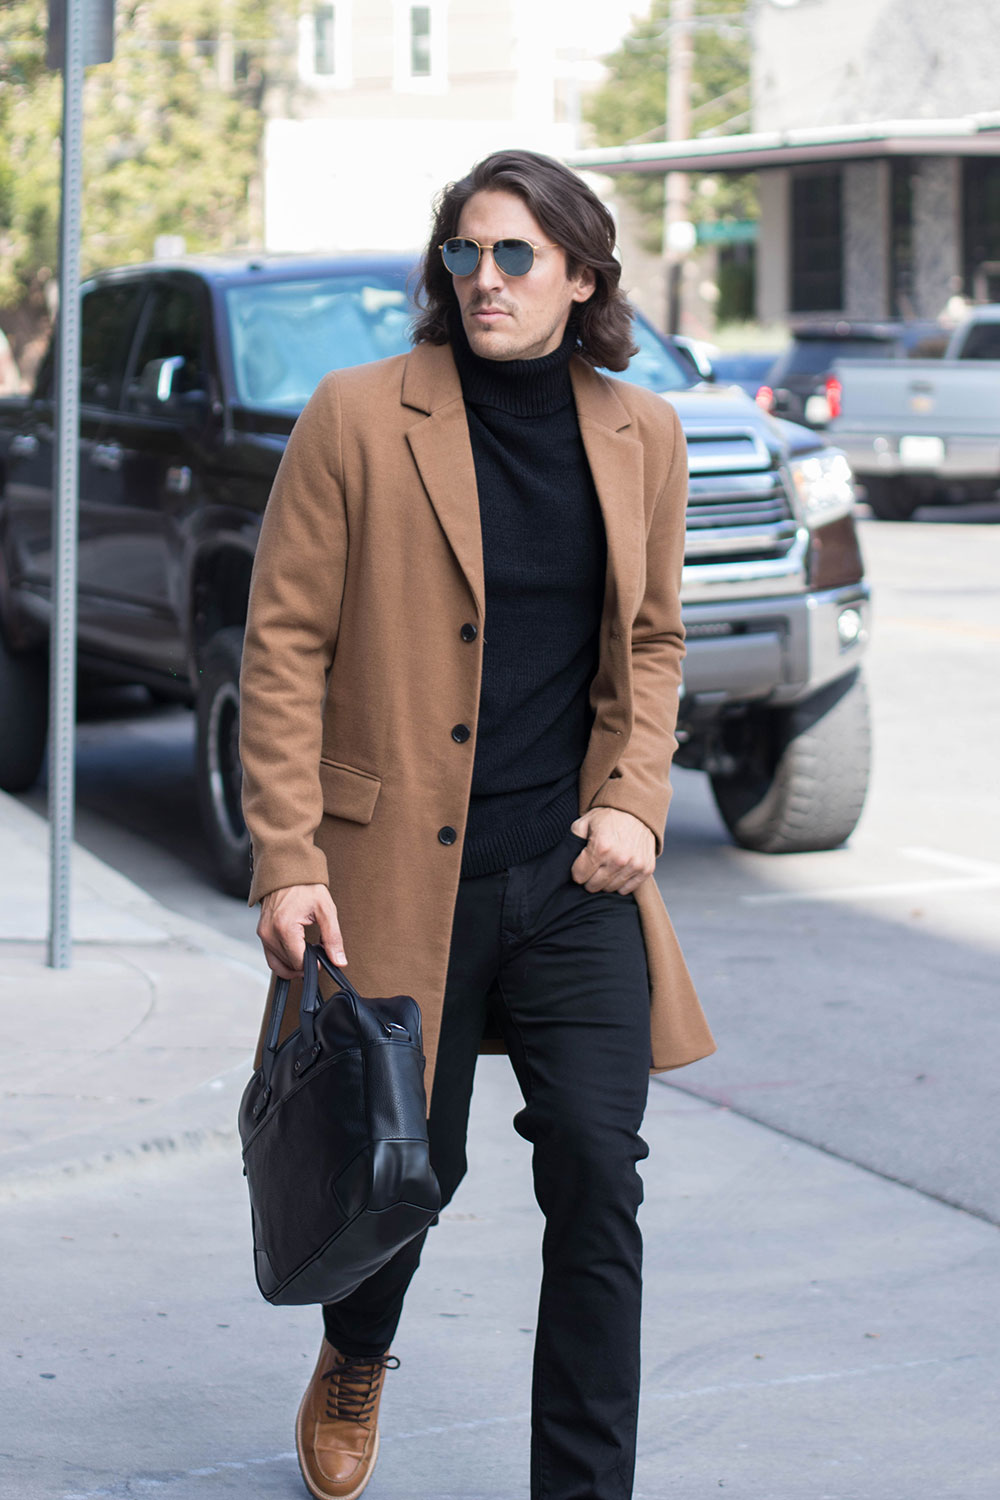 Mens Camel Overcoat with Black Sweater, Black Jeans and Brown Shoes 2